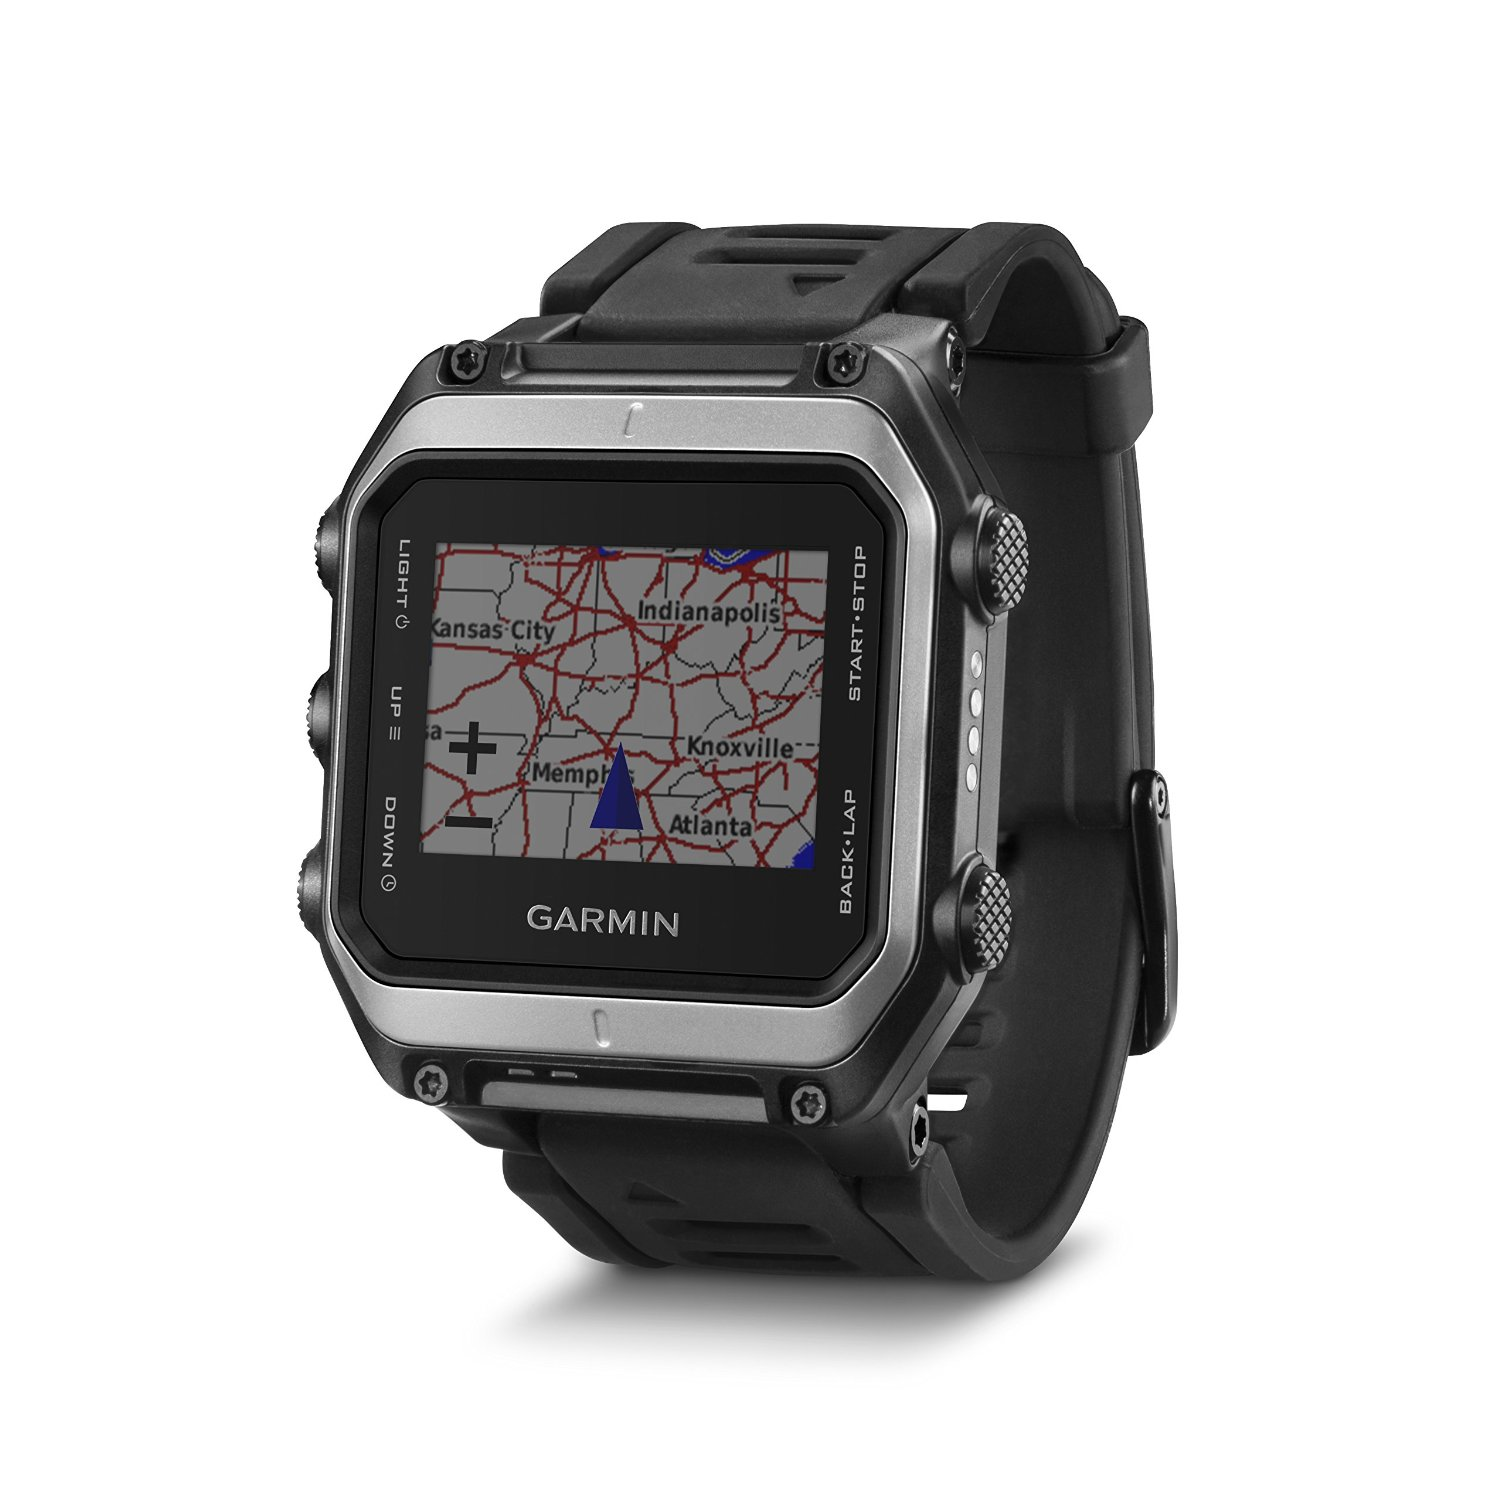 Garmin Epix GPS Watch with Real Time Mapping - Preloaded US TOPO Maps and Smart Notifications